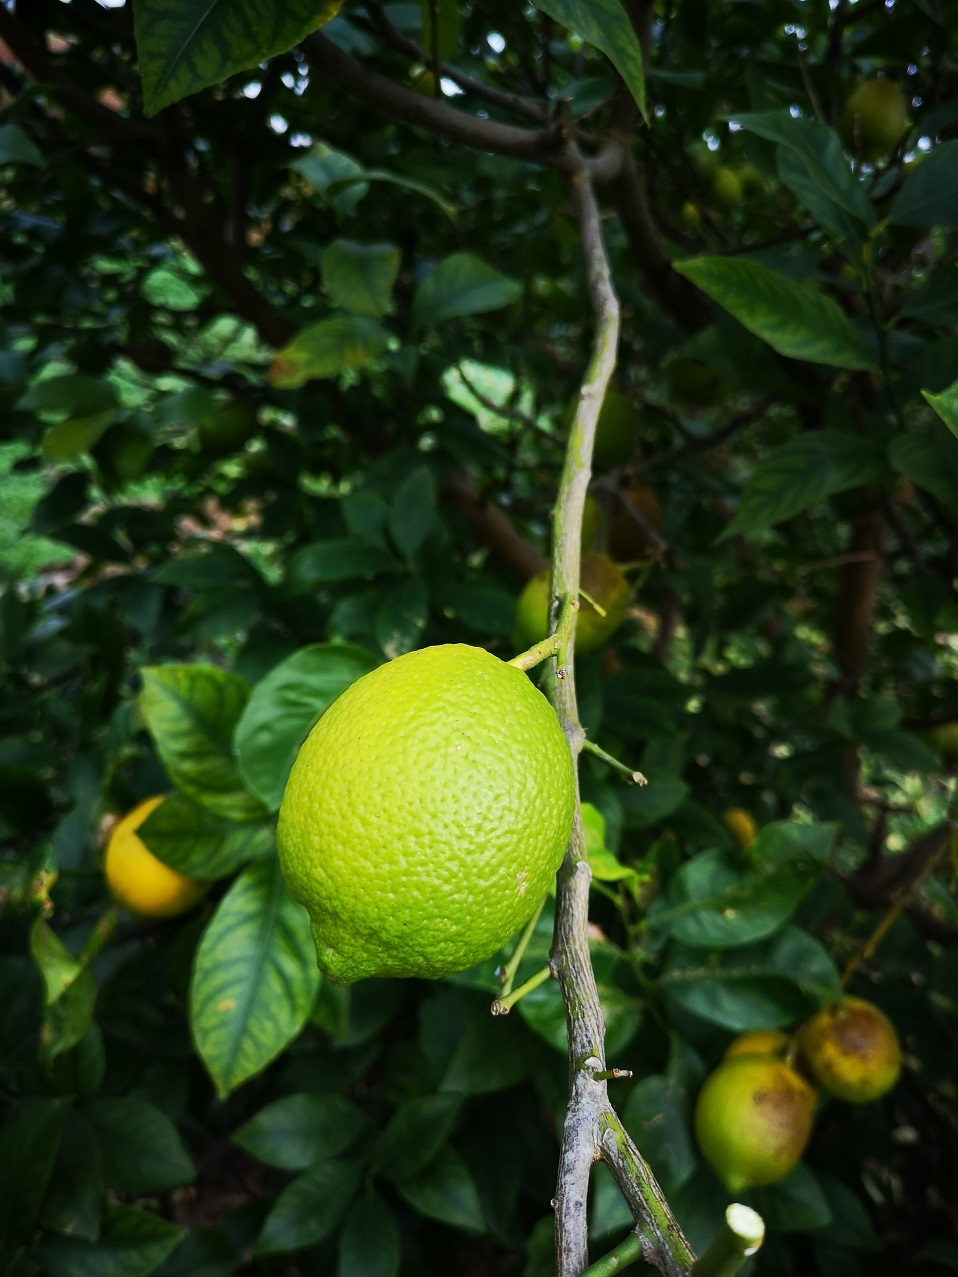 s_20191127_lemon_onoue (7)